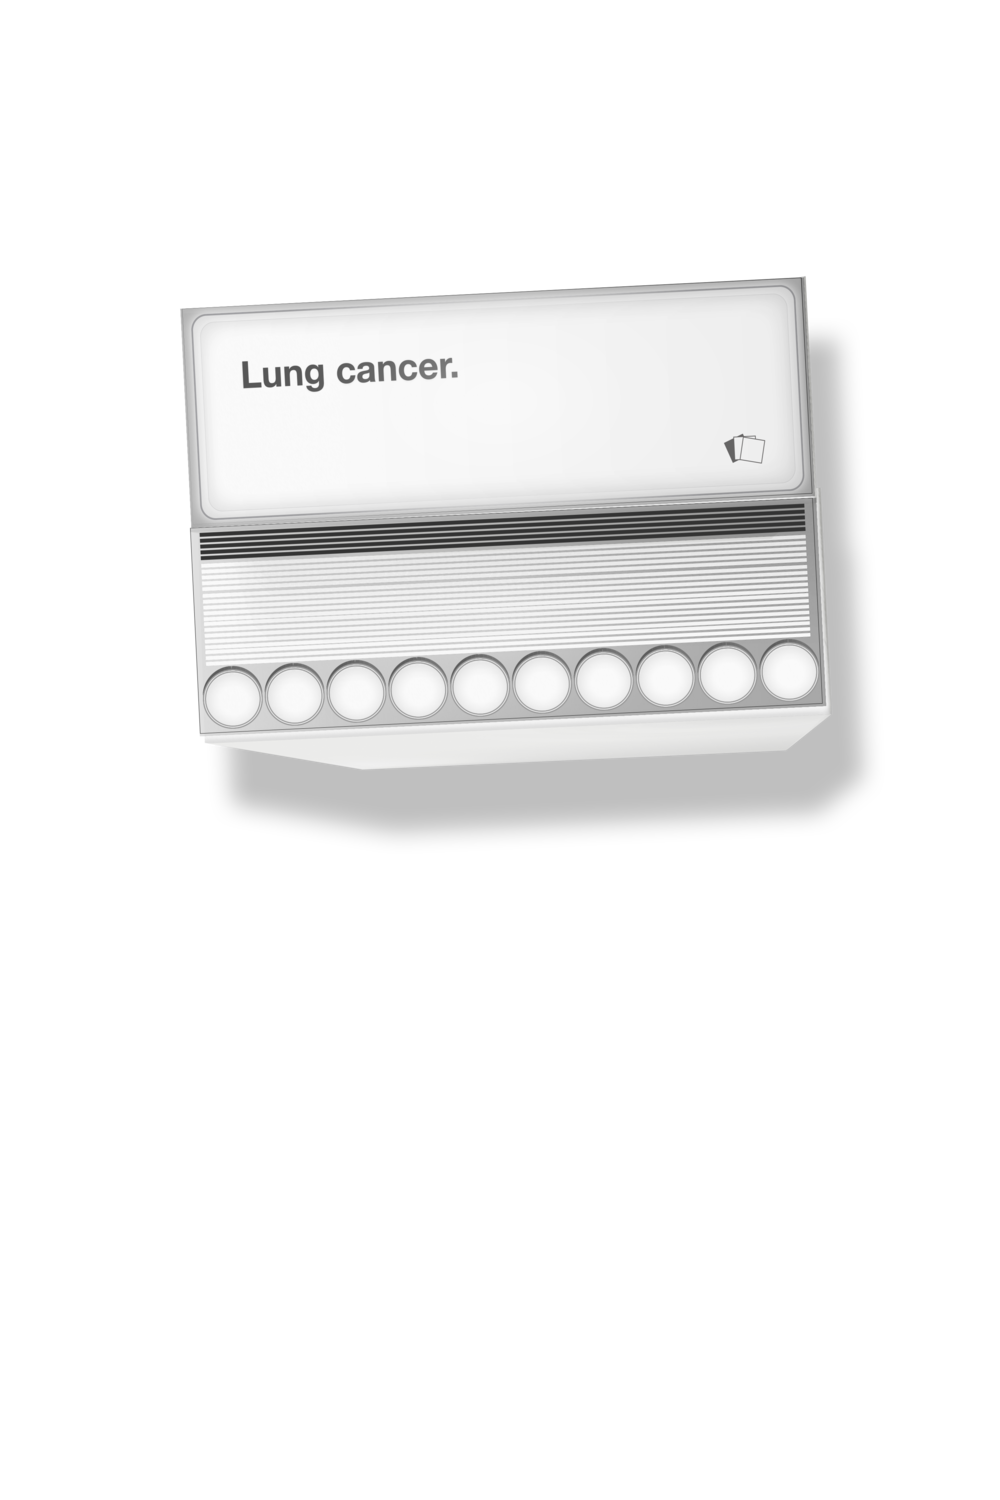 LungCancer.png